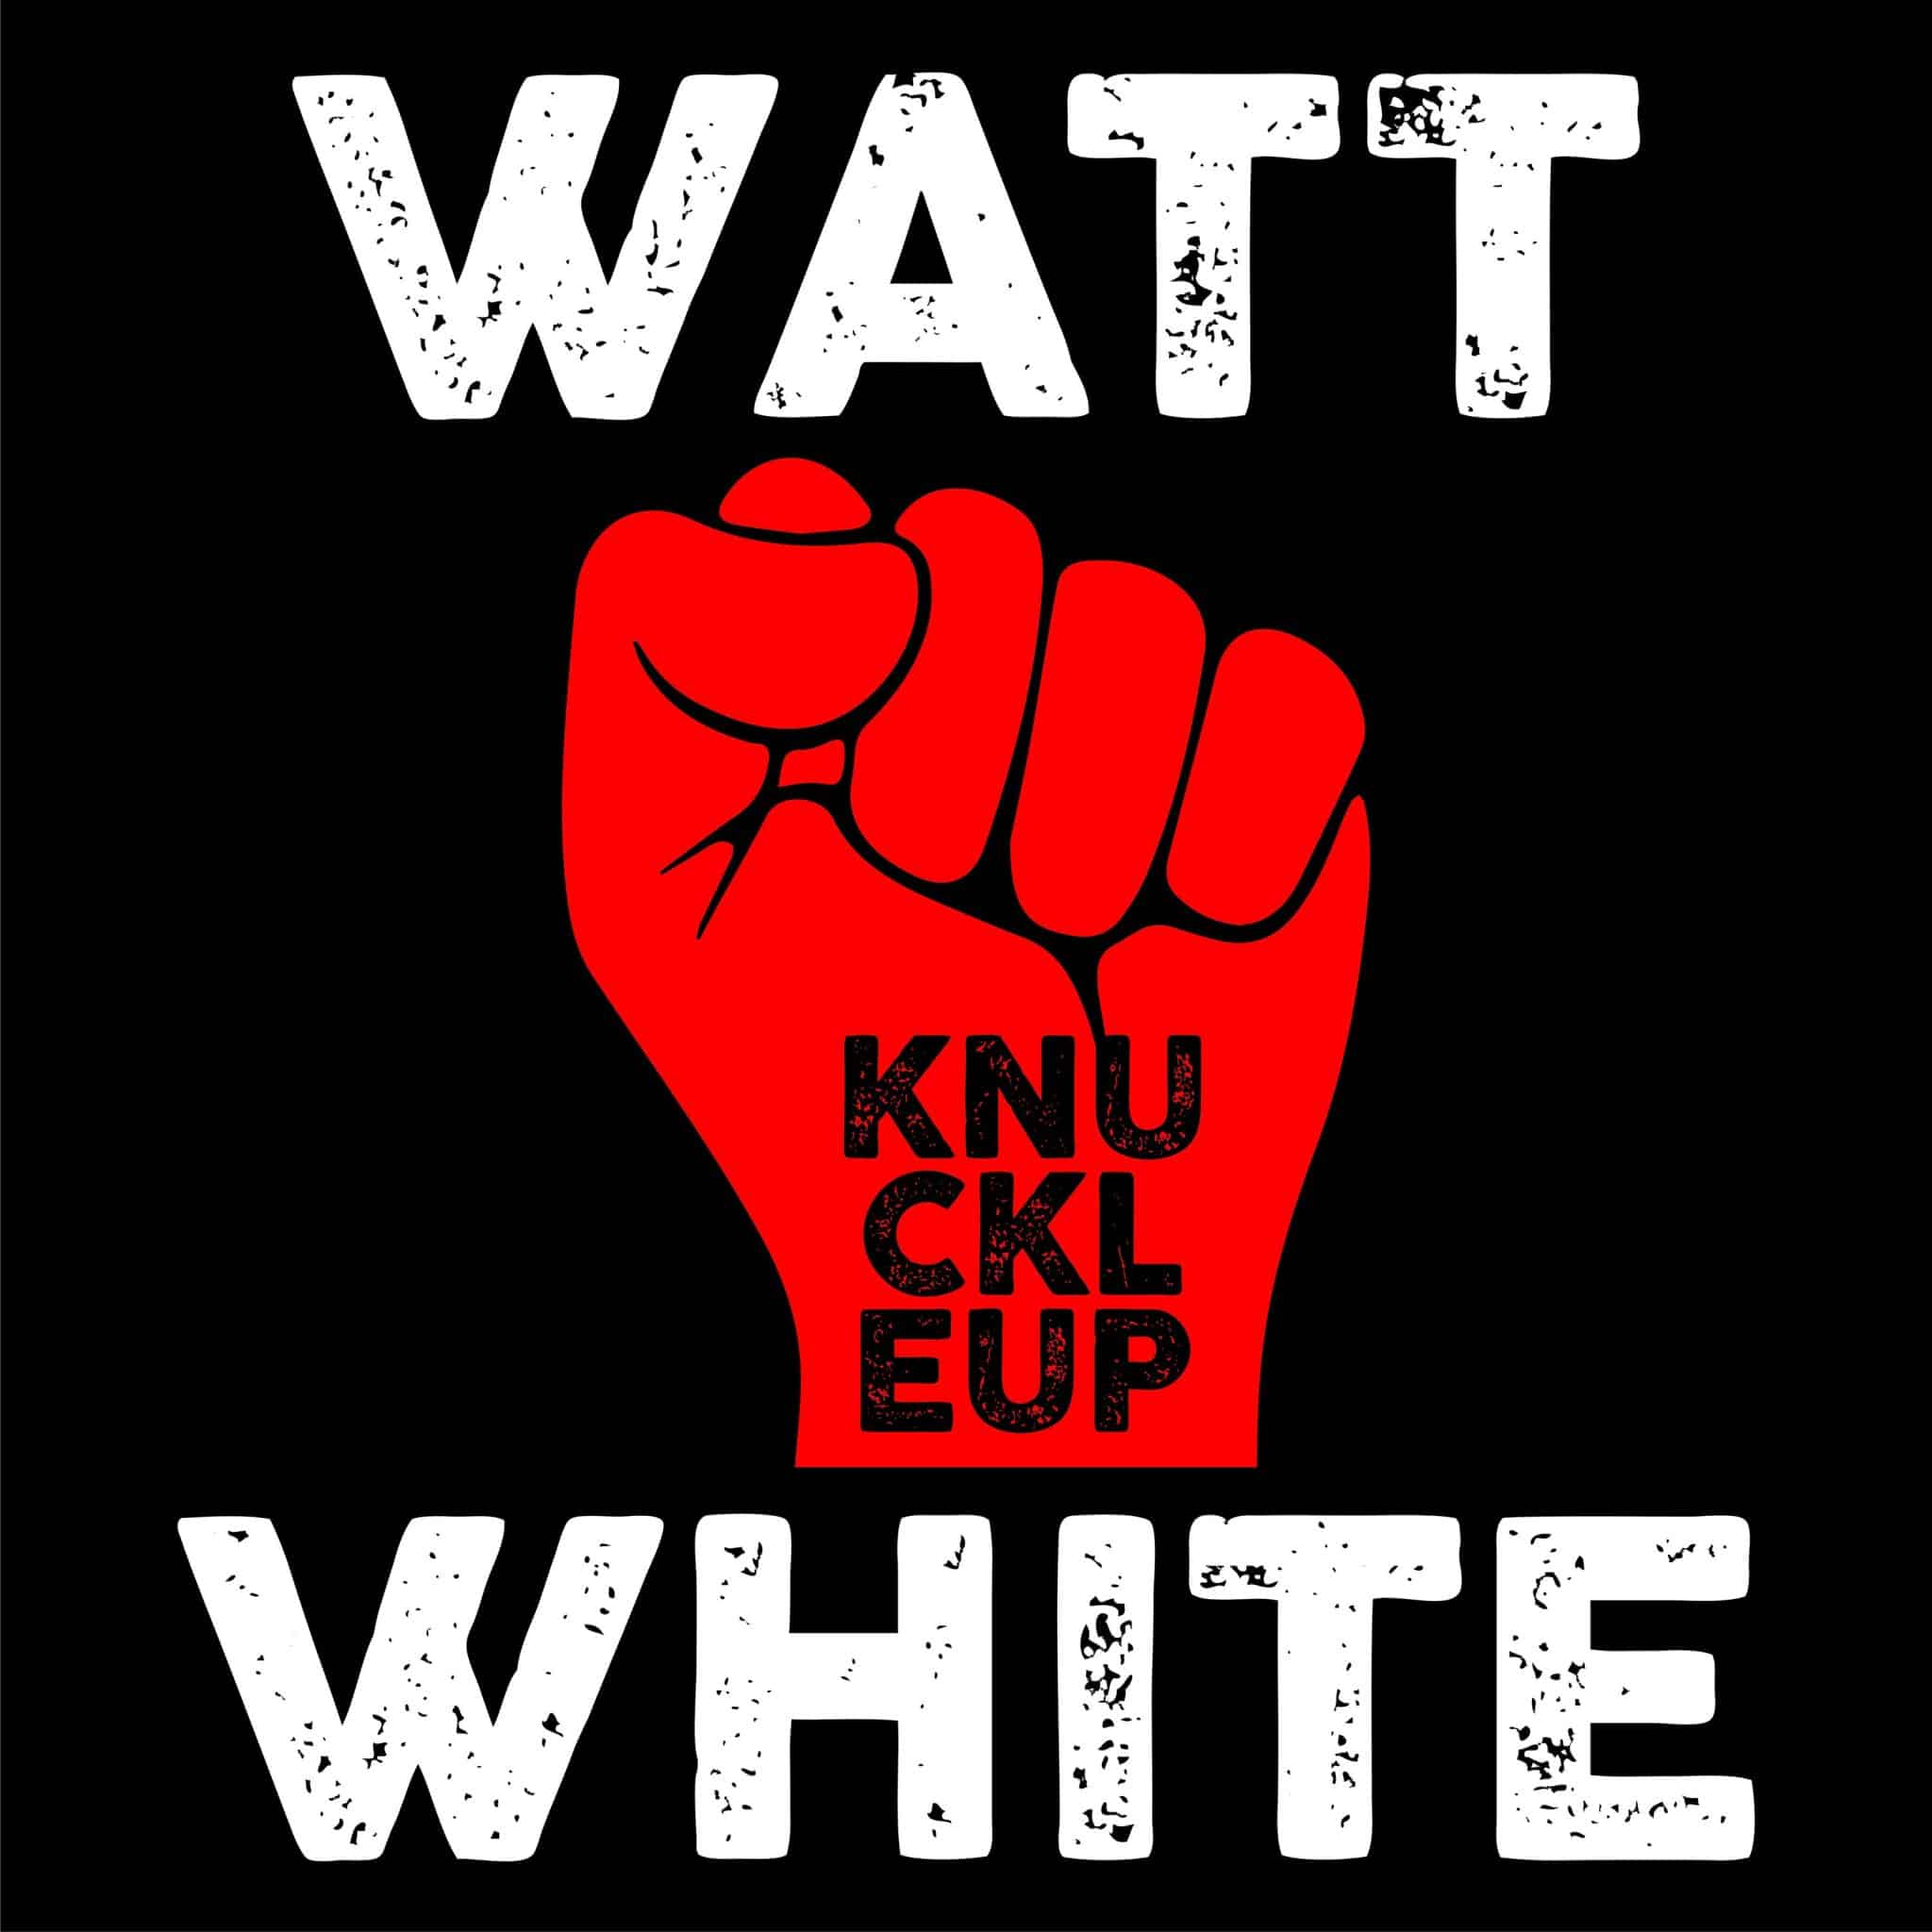 watt white knuckle up